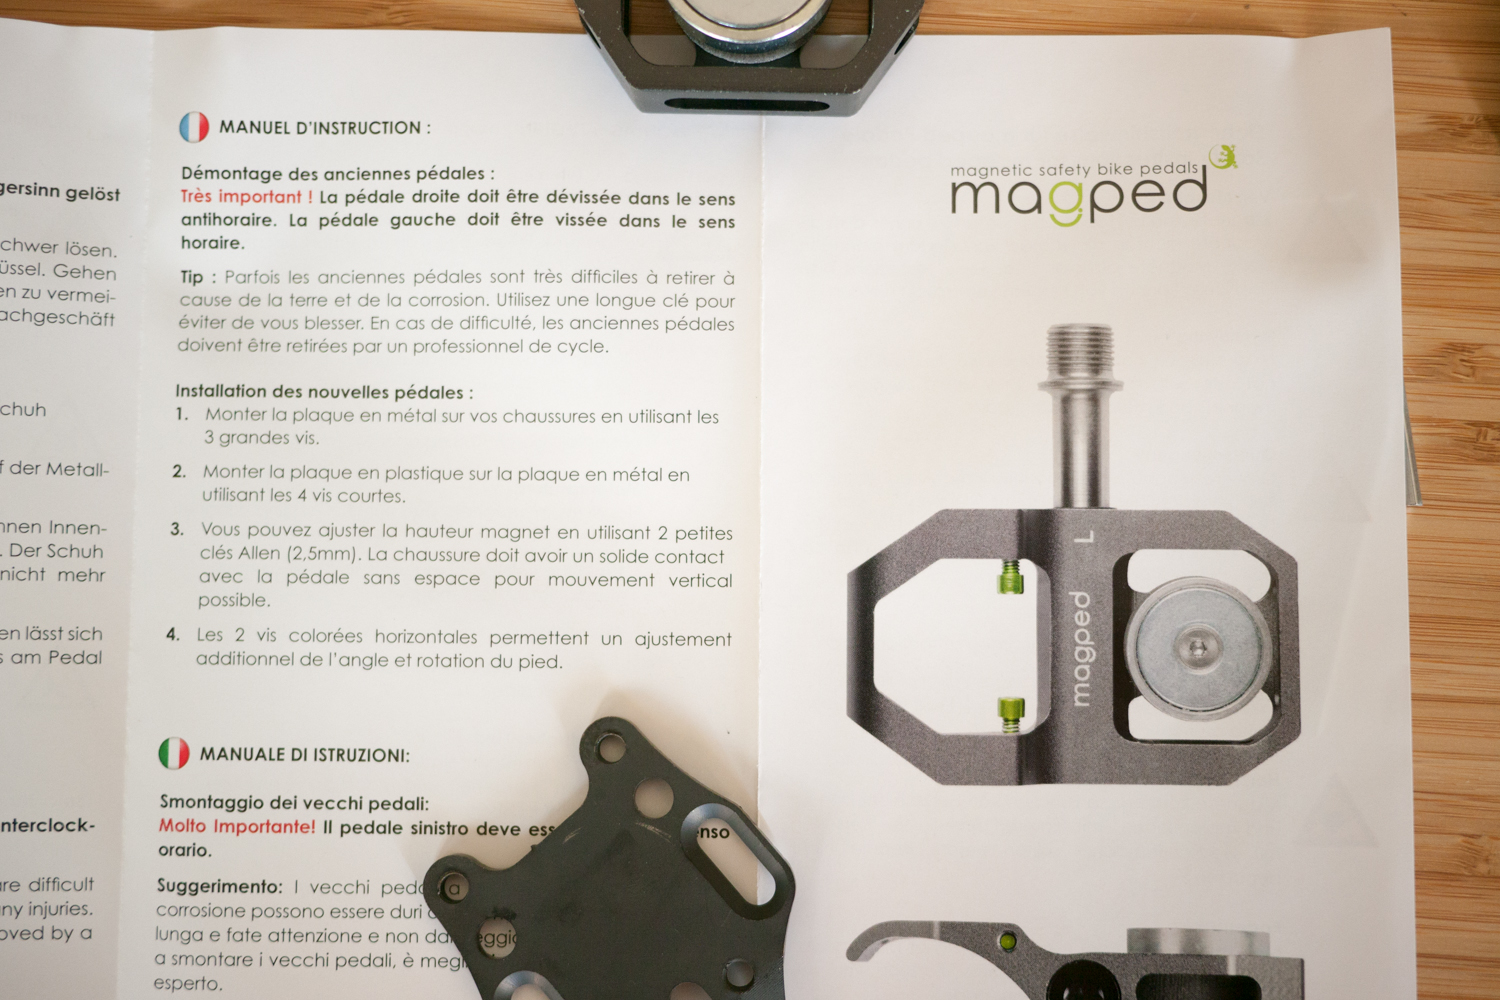 Magped magnetic cycling pedals notice